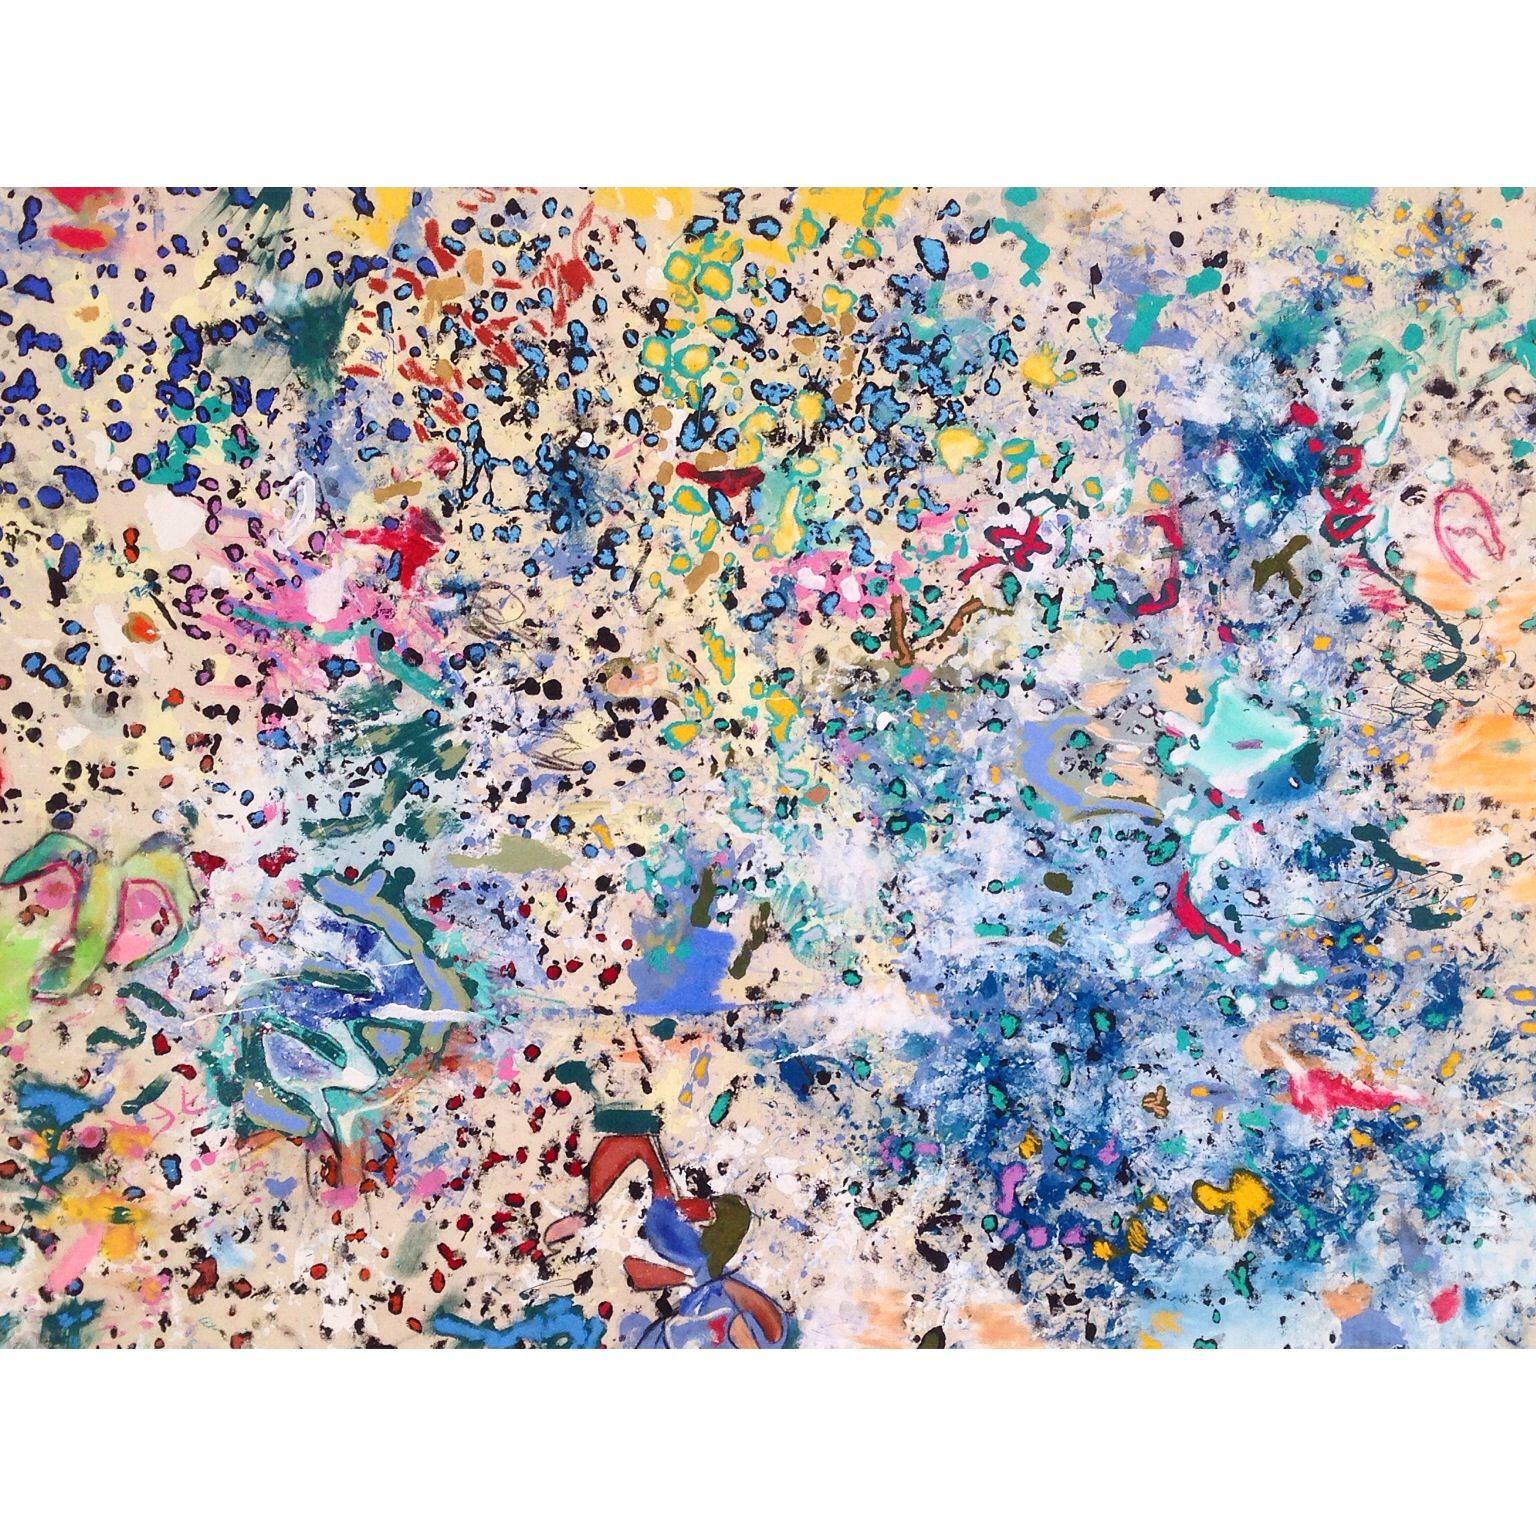 Acrylic and Oil Stick on Canvas  63 x 47 in  160 x 120 cm